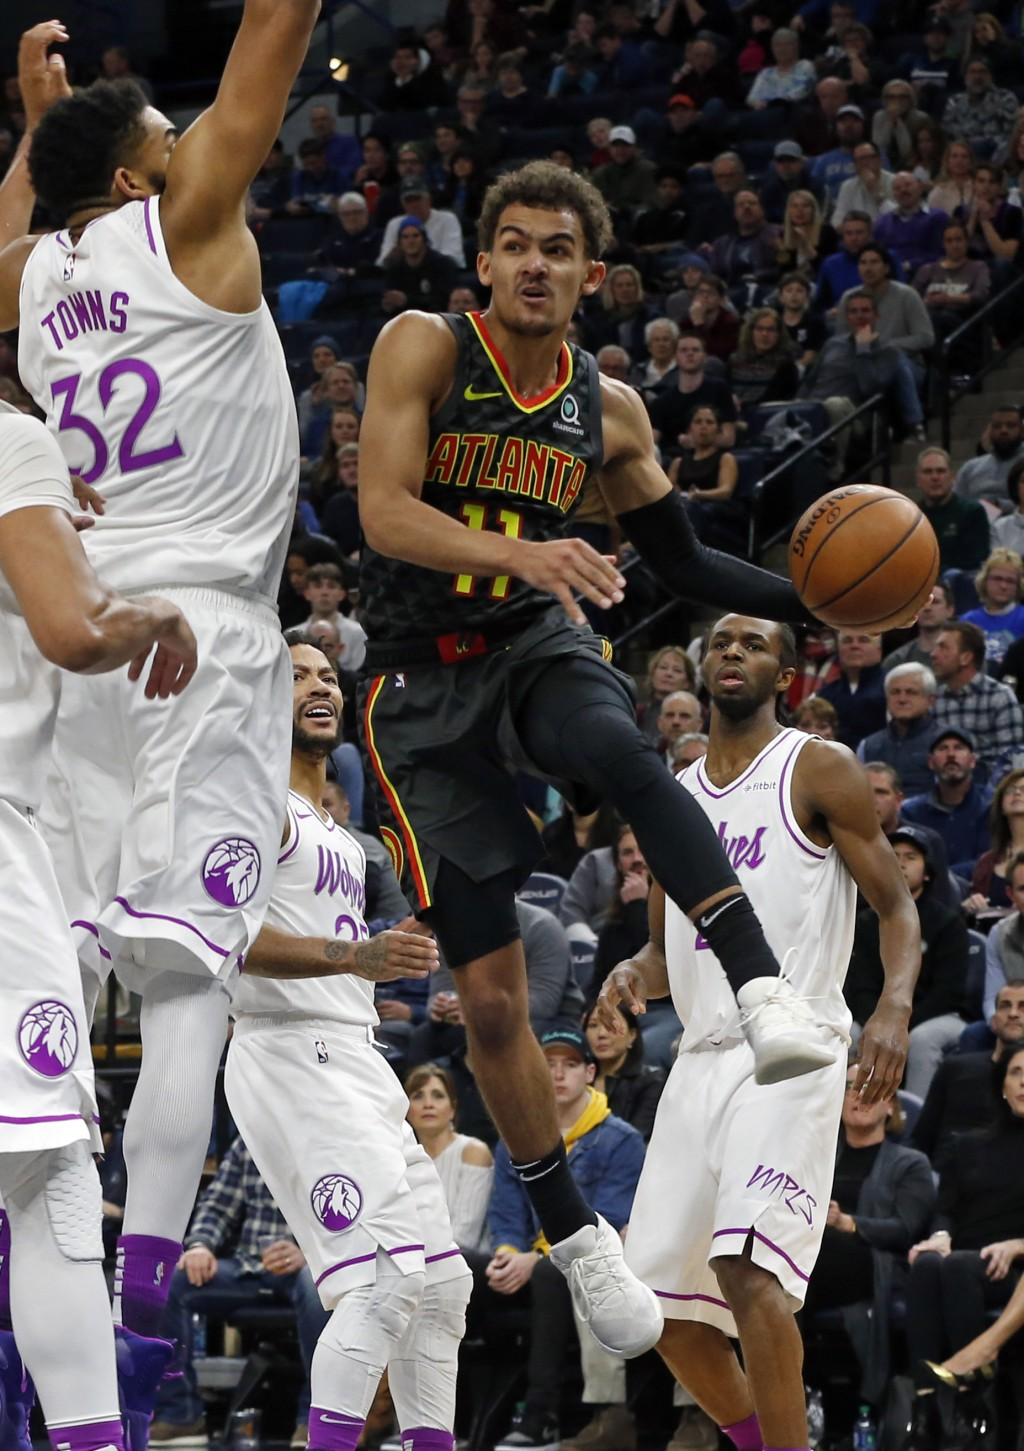 Atlanta Hawks' Trae Young, right, goes to the air to make a pass as Minnesota Timberwolves' Karl-Anthony Towns defends during the second half of an NB...